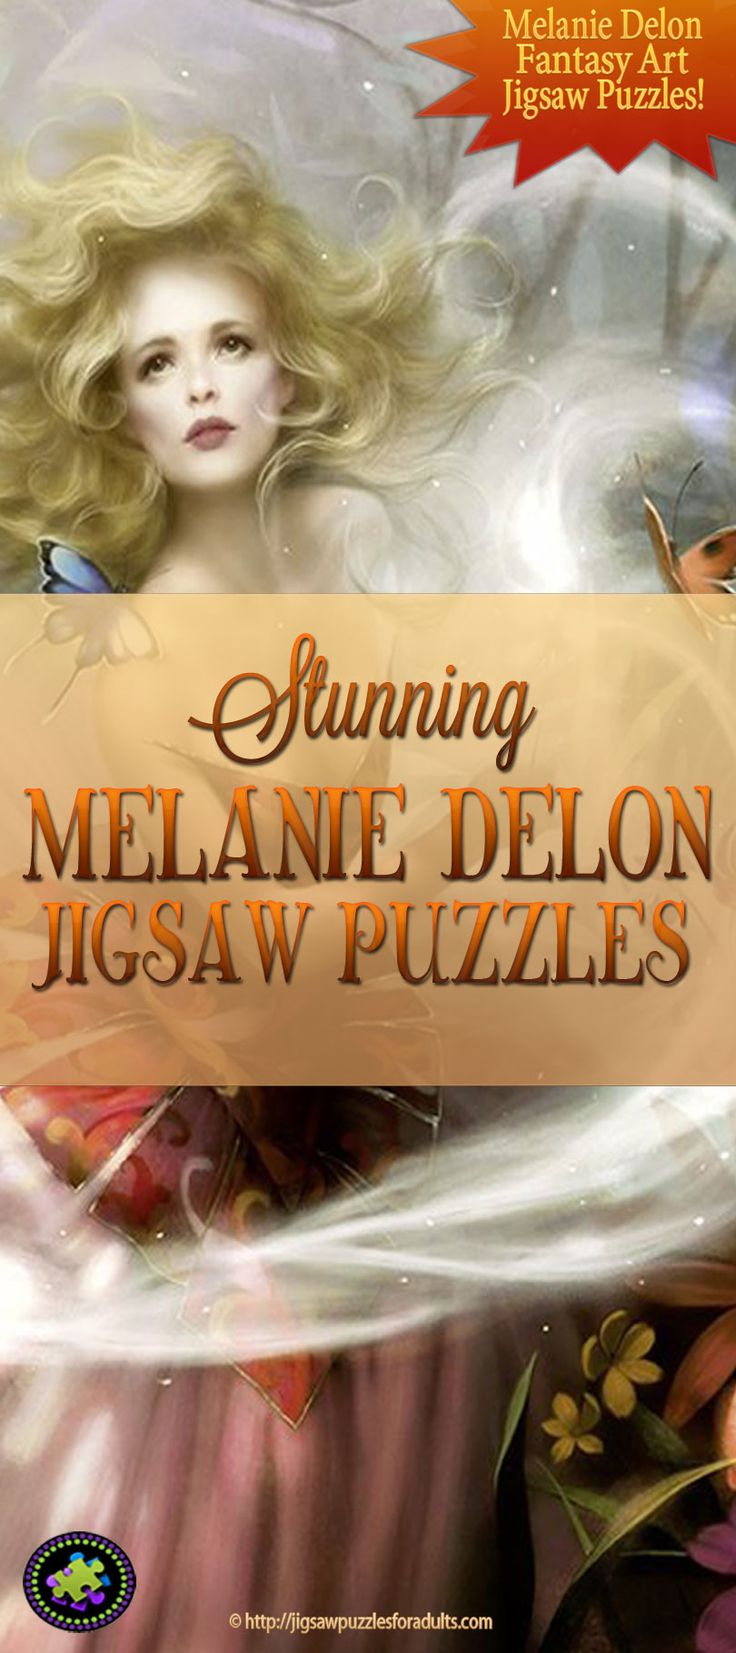 If you like fantasy and gothic images you'll love these Heye jigsaw puzzles from the artwork of Melanie Delon.